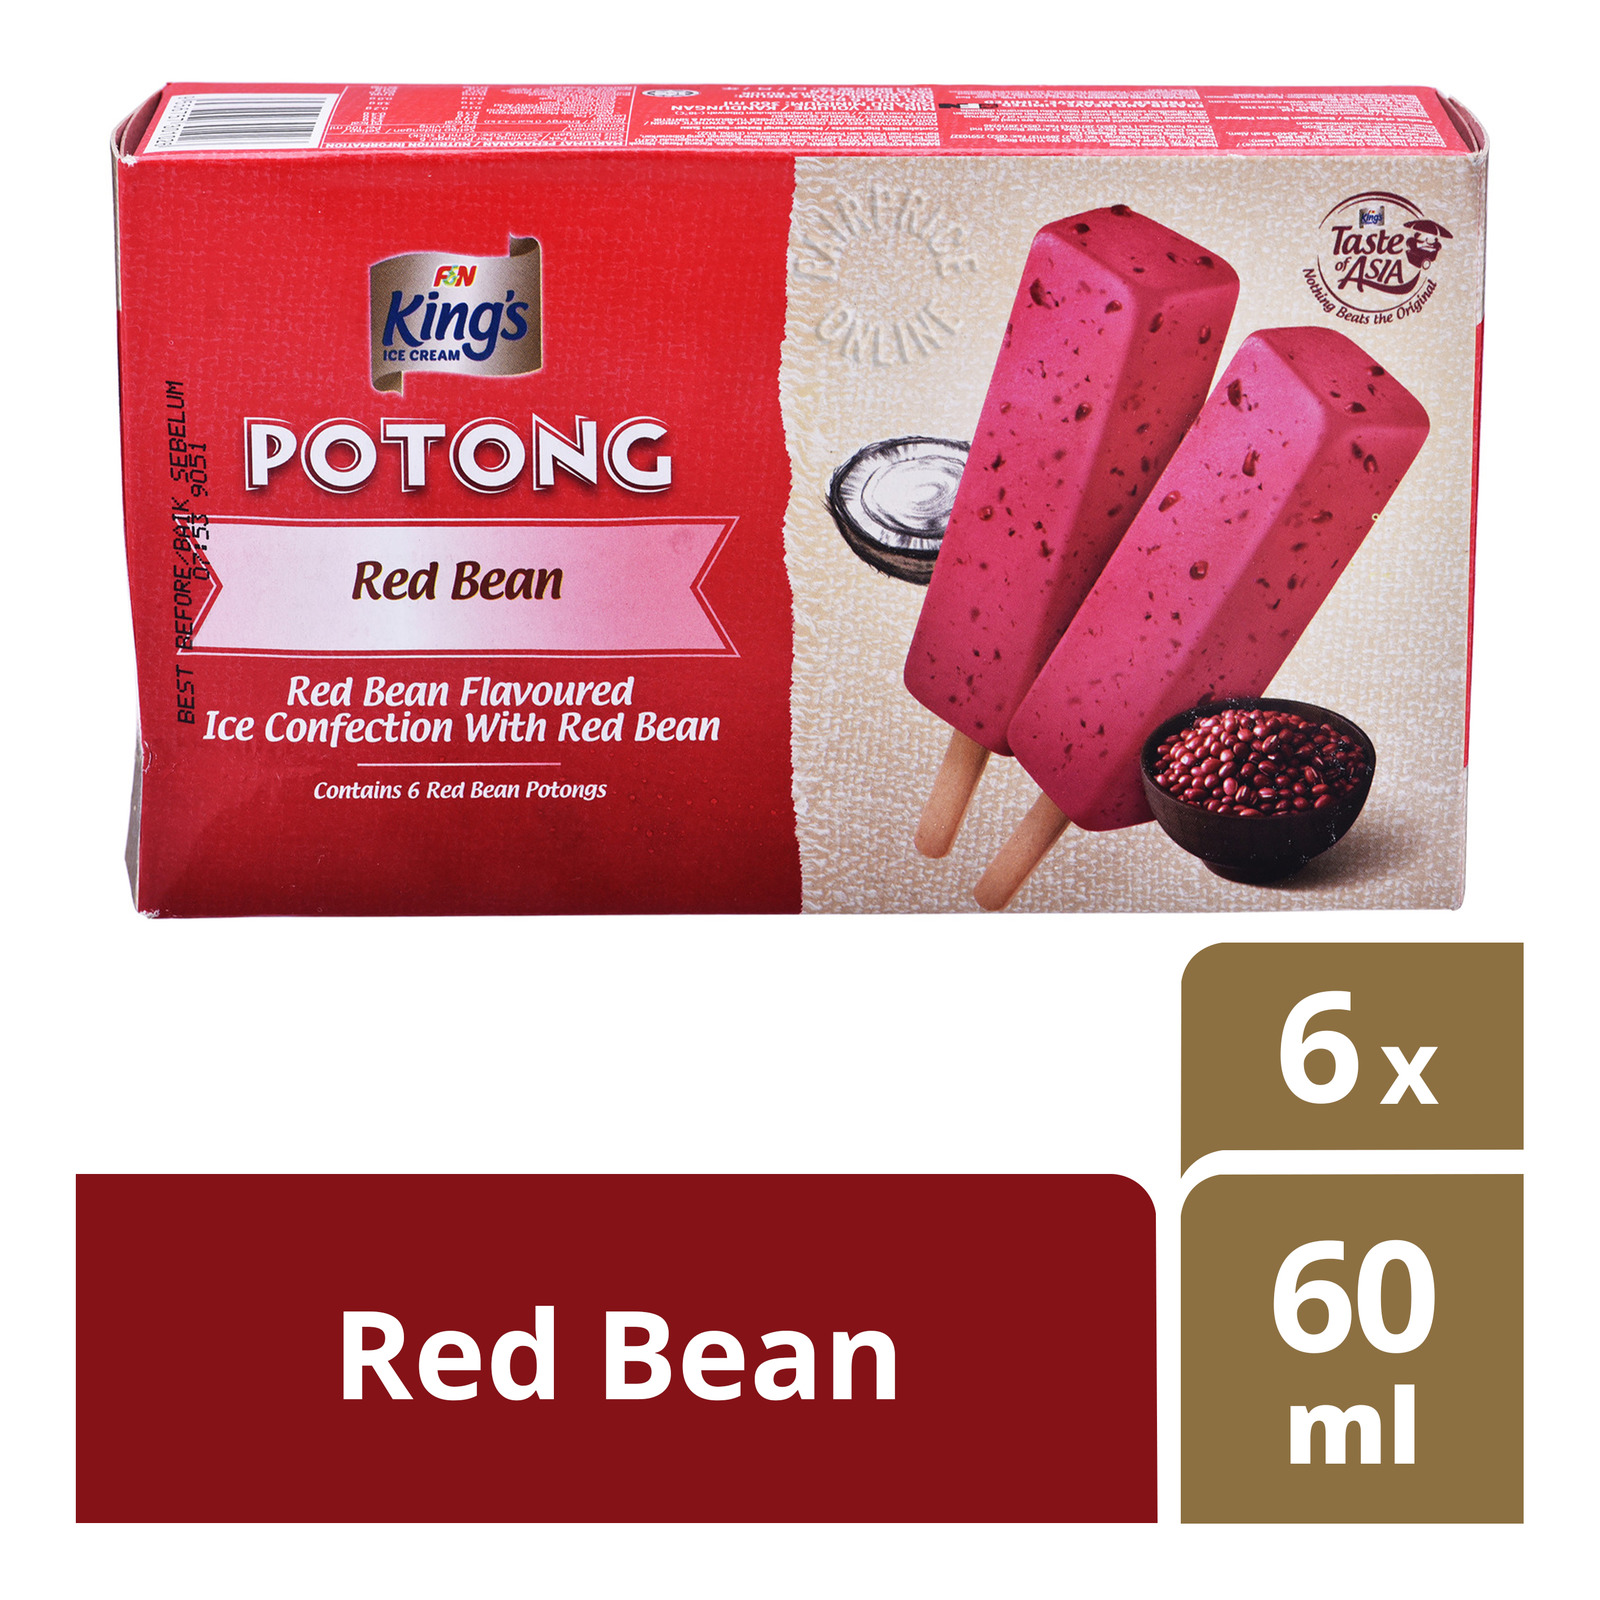 King's Potong Ice Cream - Red Bean